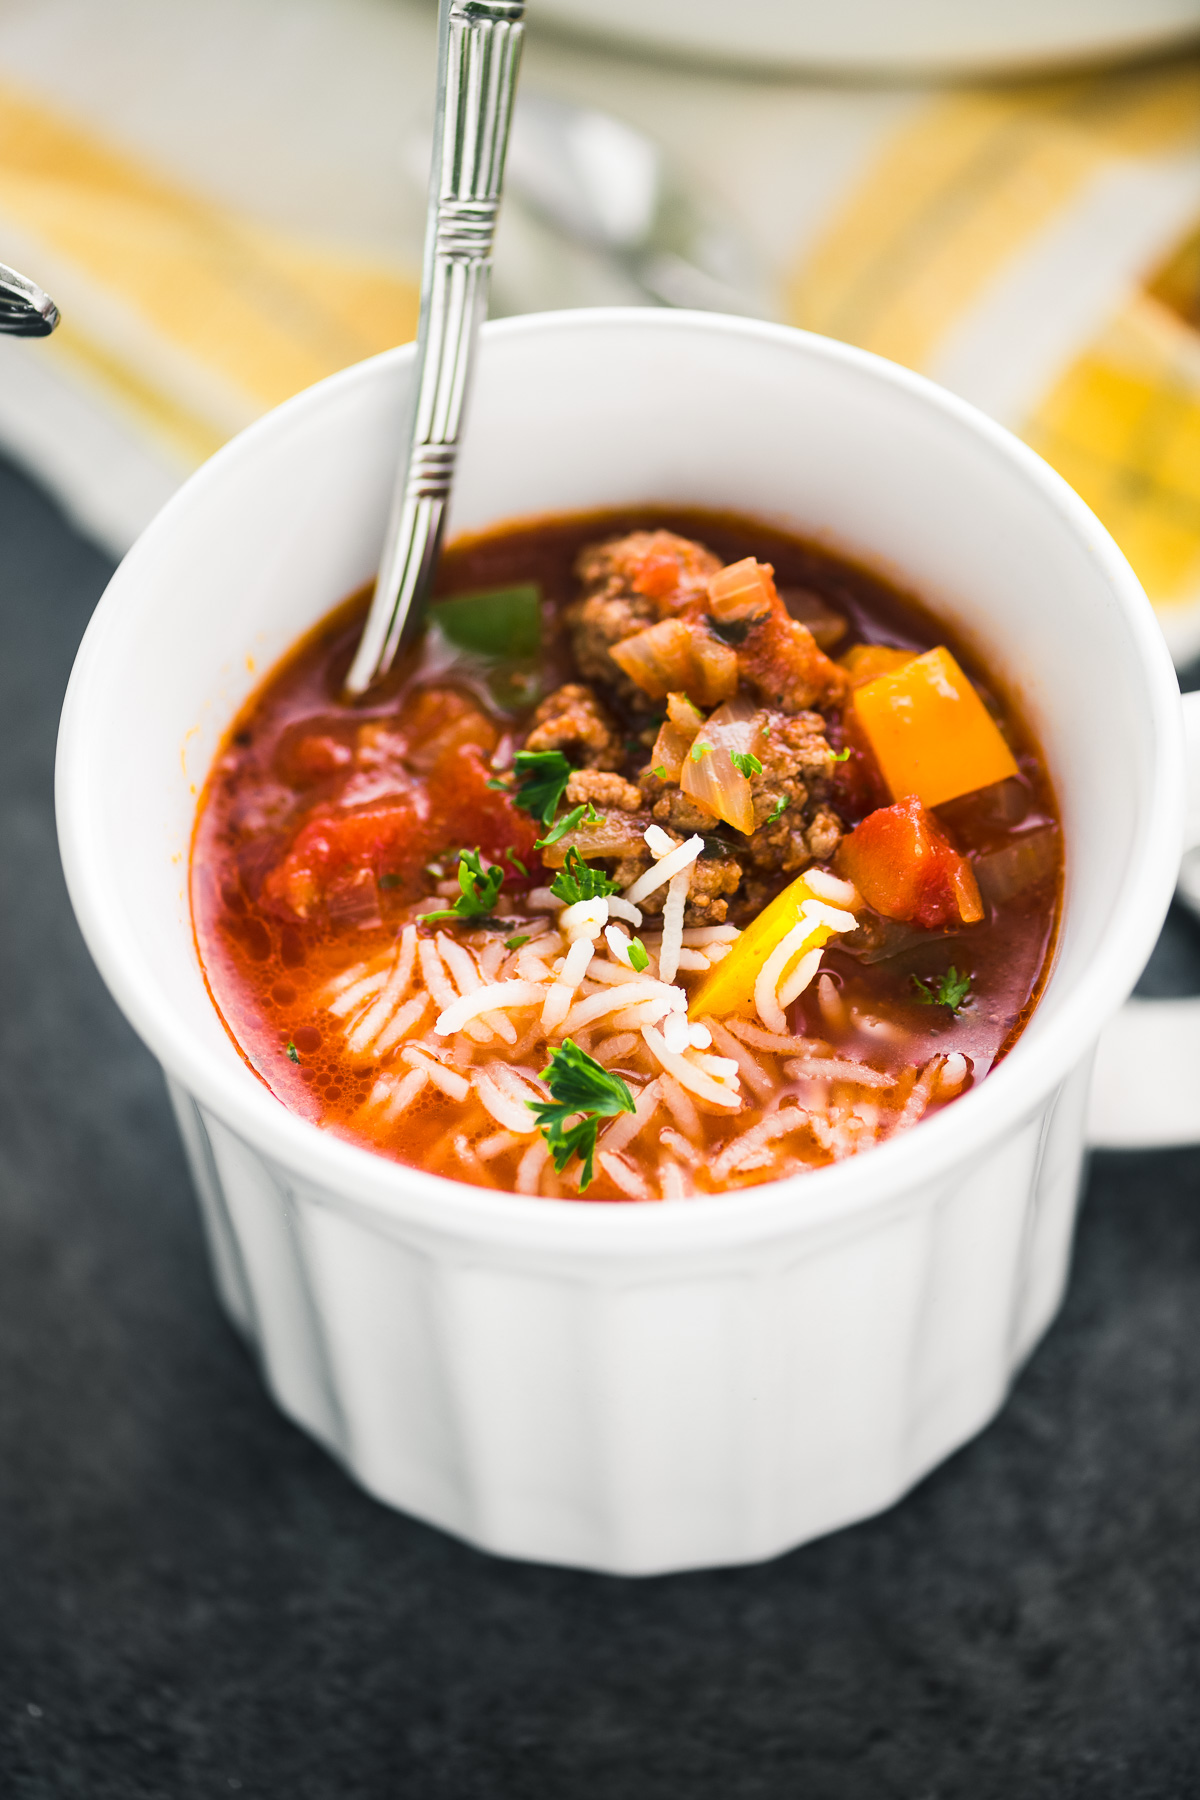 stuffed pepper soup in a white mug